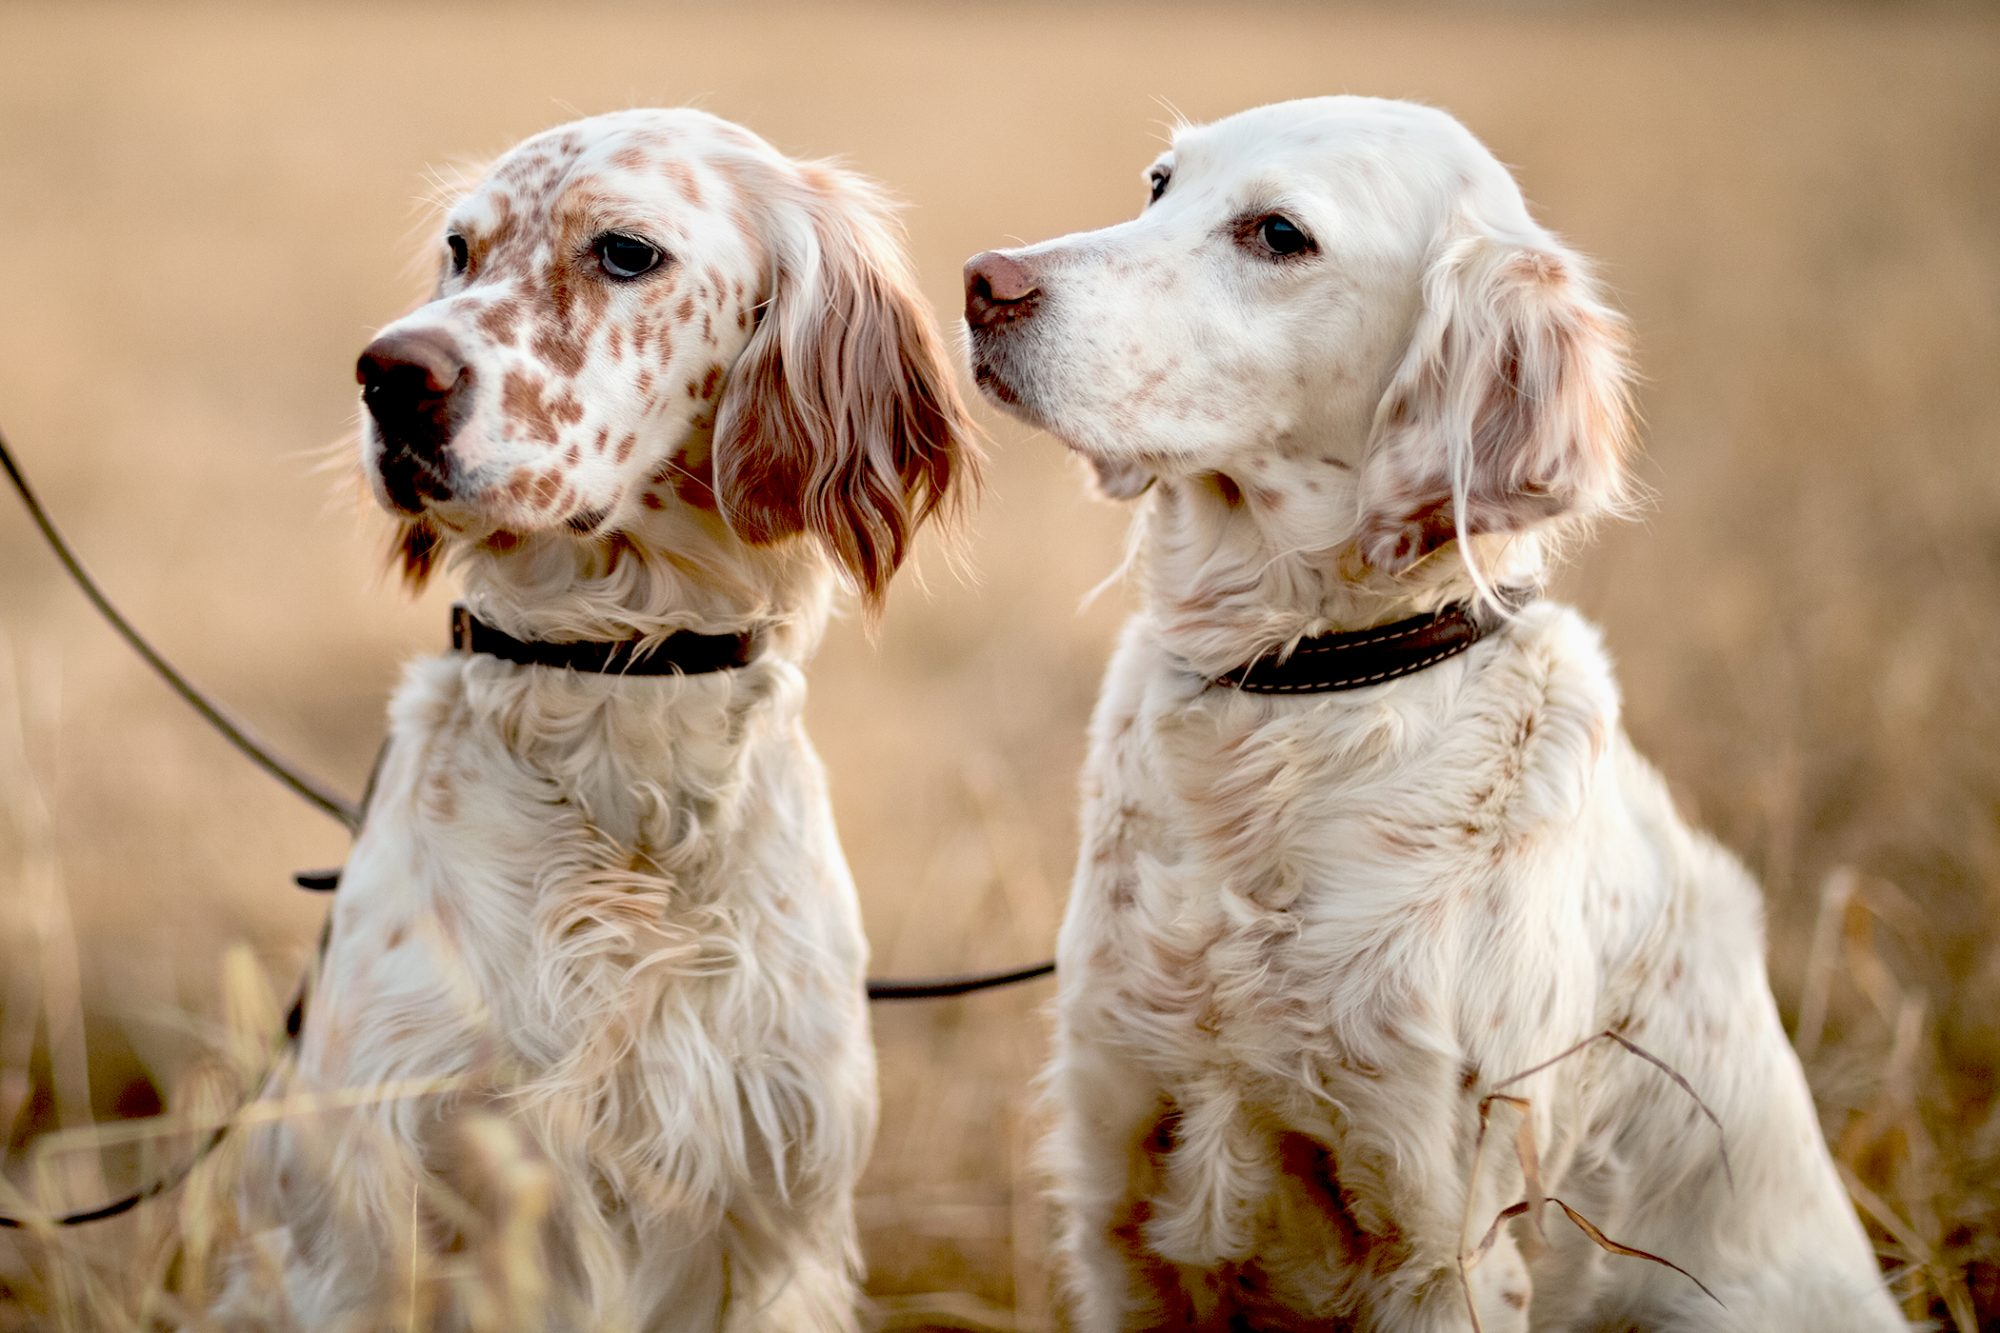 Two white-blond English Setters with red markings stand next to each other on leash